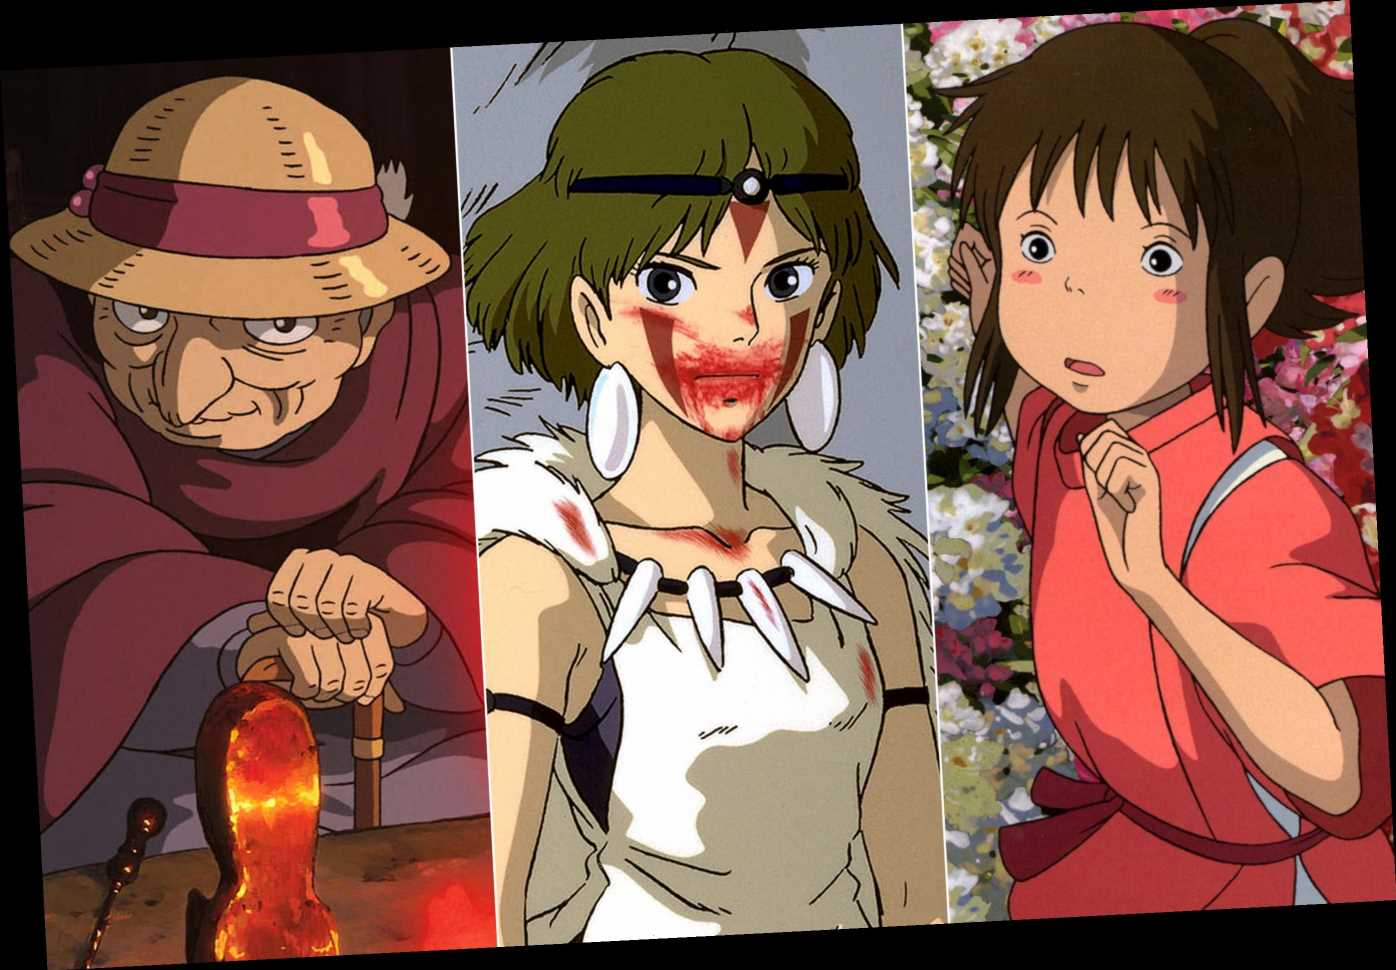 HBO Max will have all Studio Ghibli films including Spirited Away